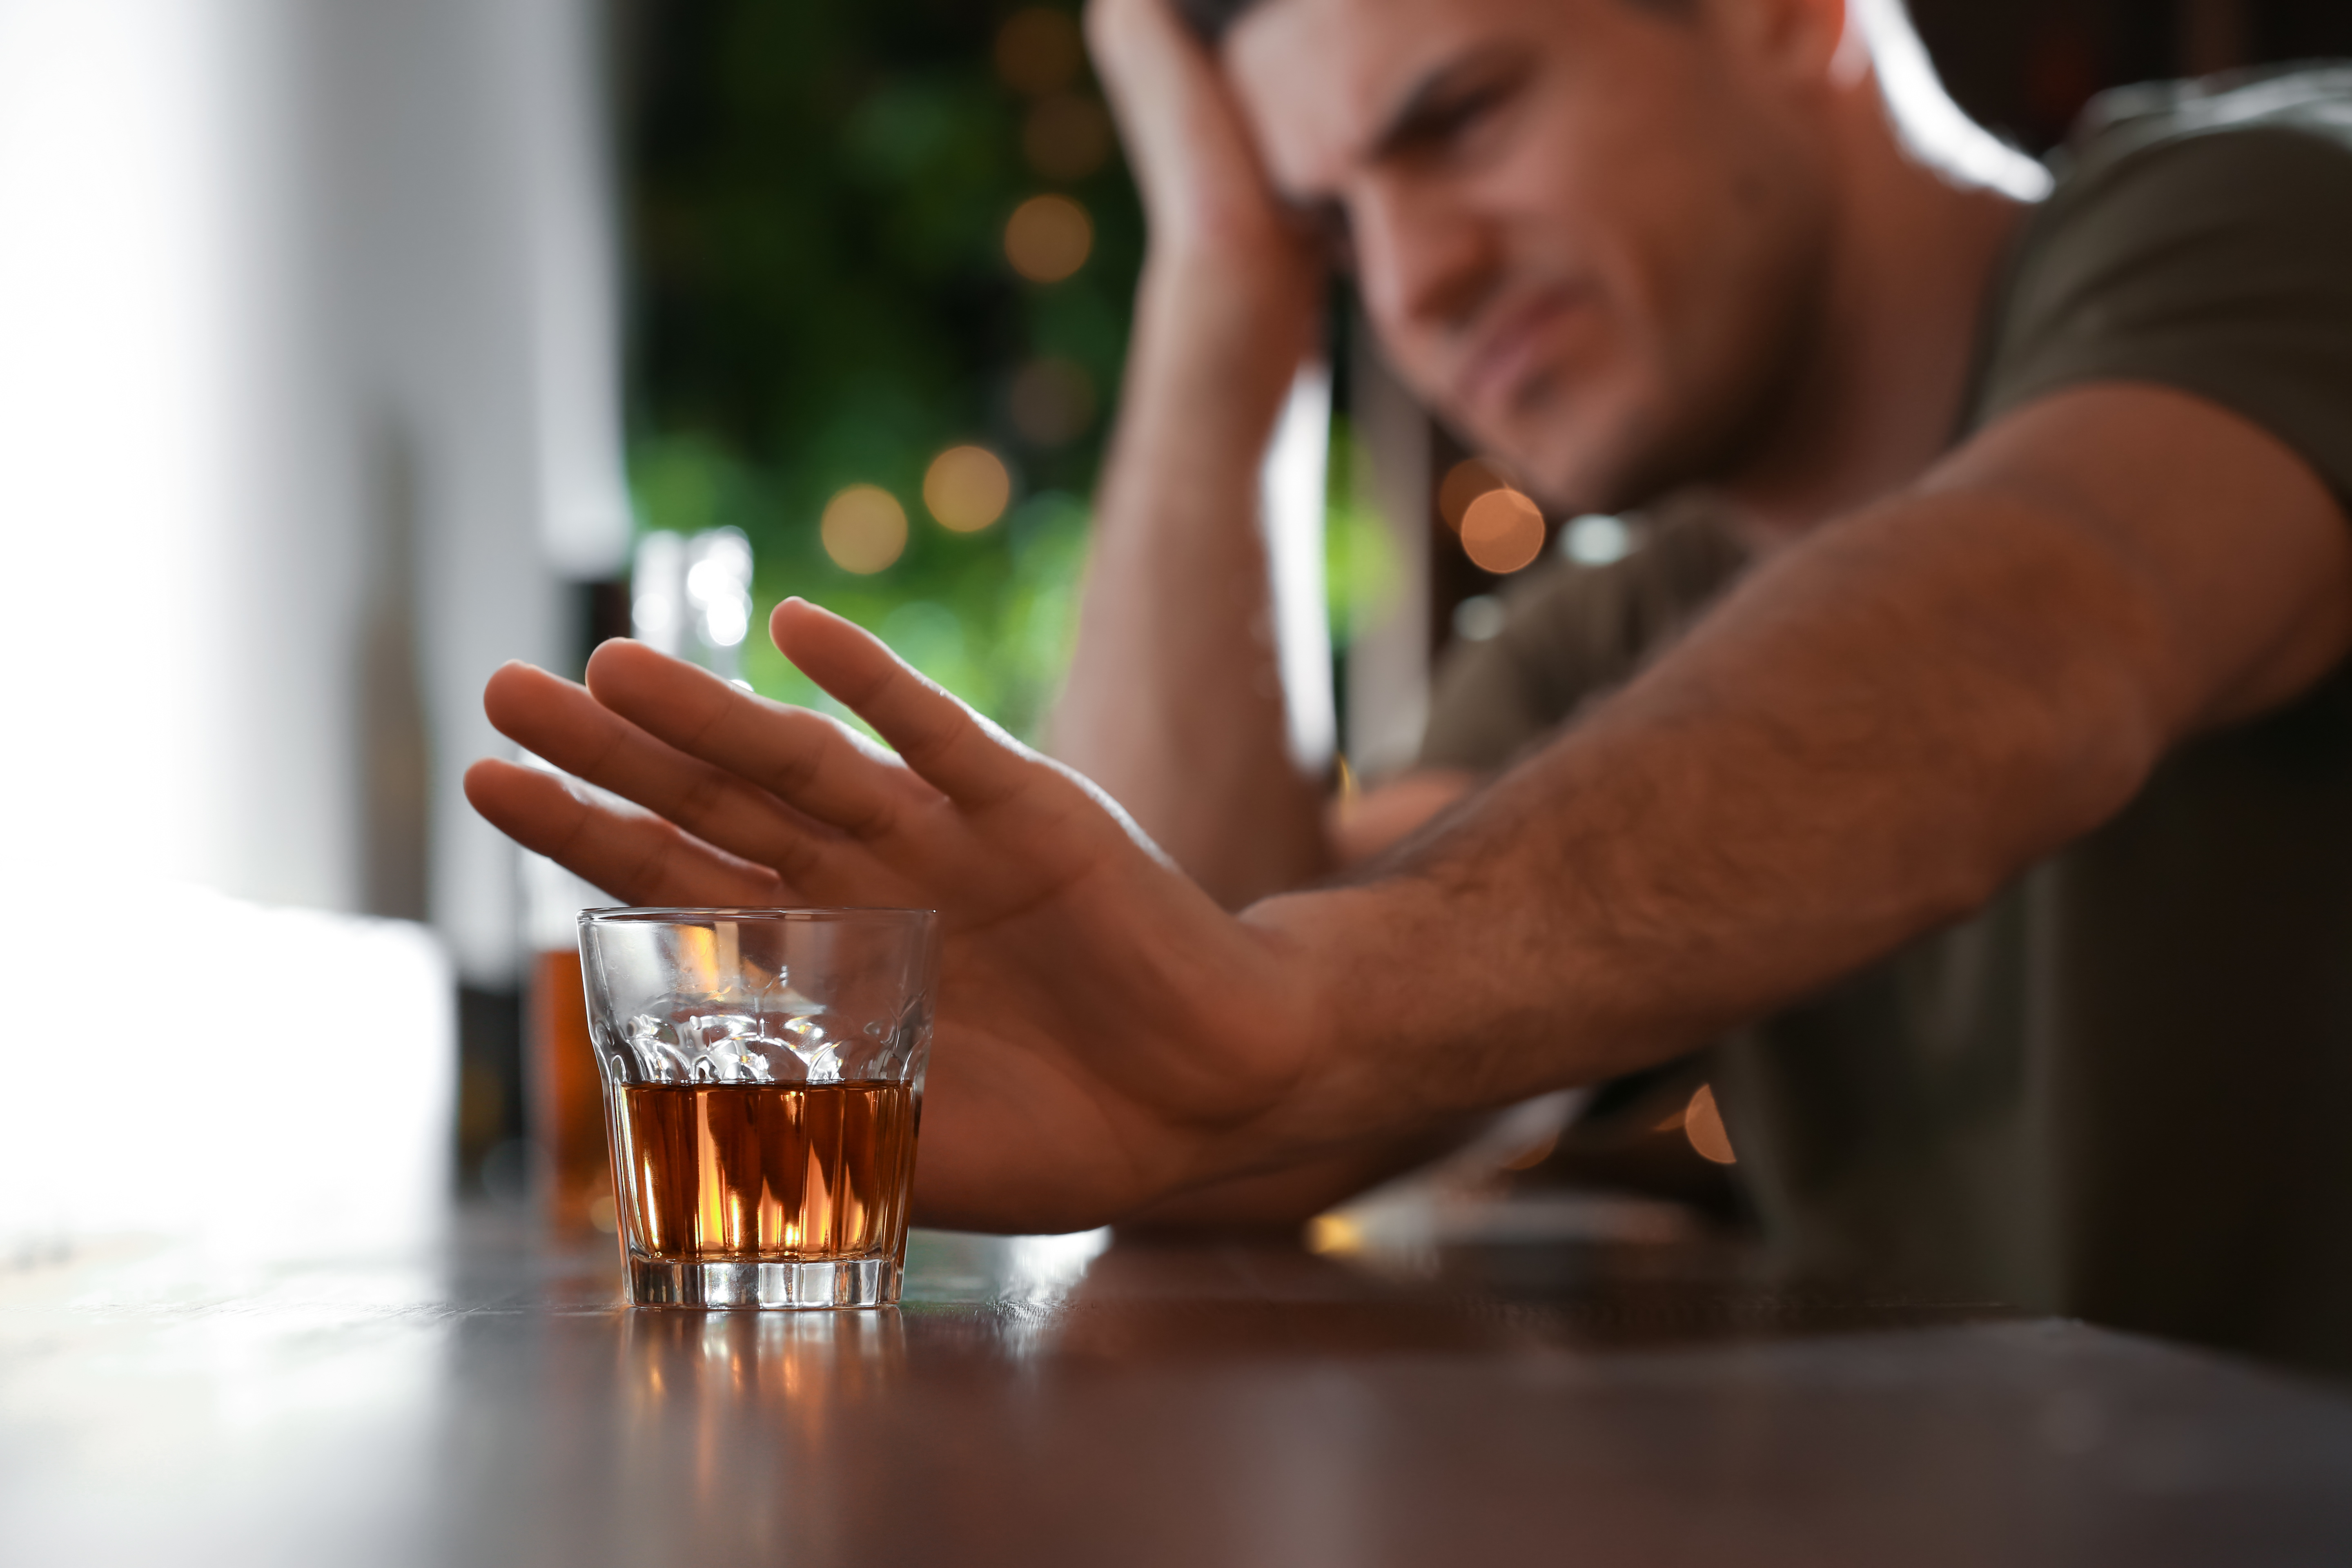 How To Stop Drinking: Getting The Right Help